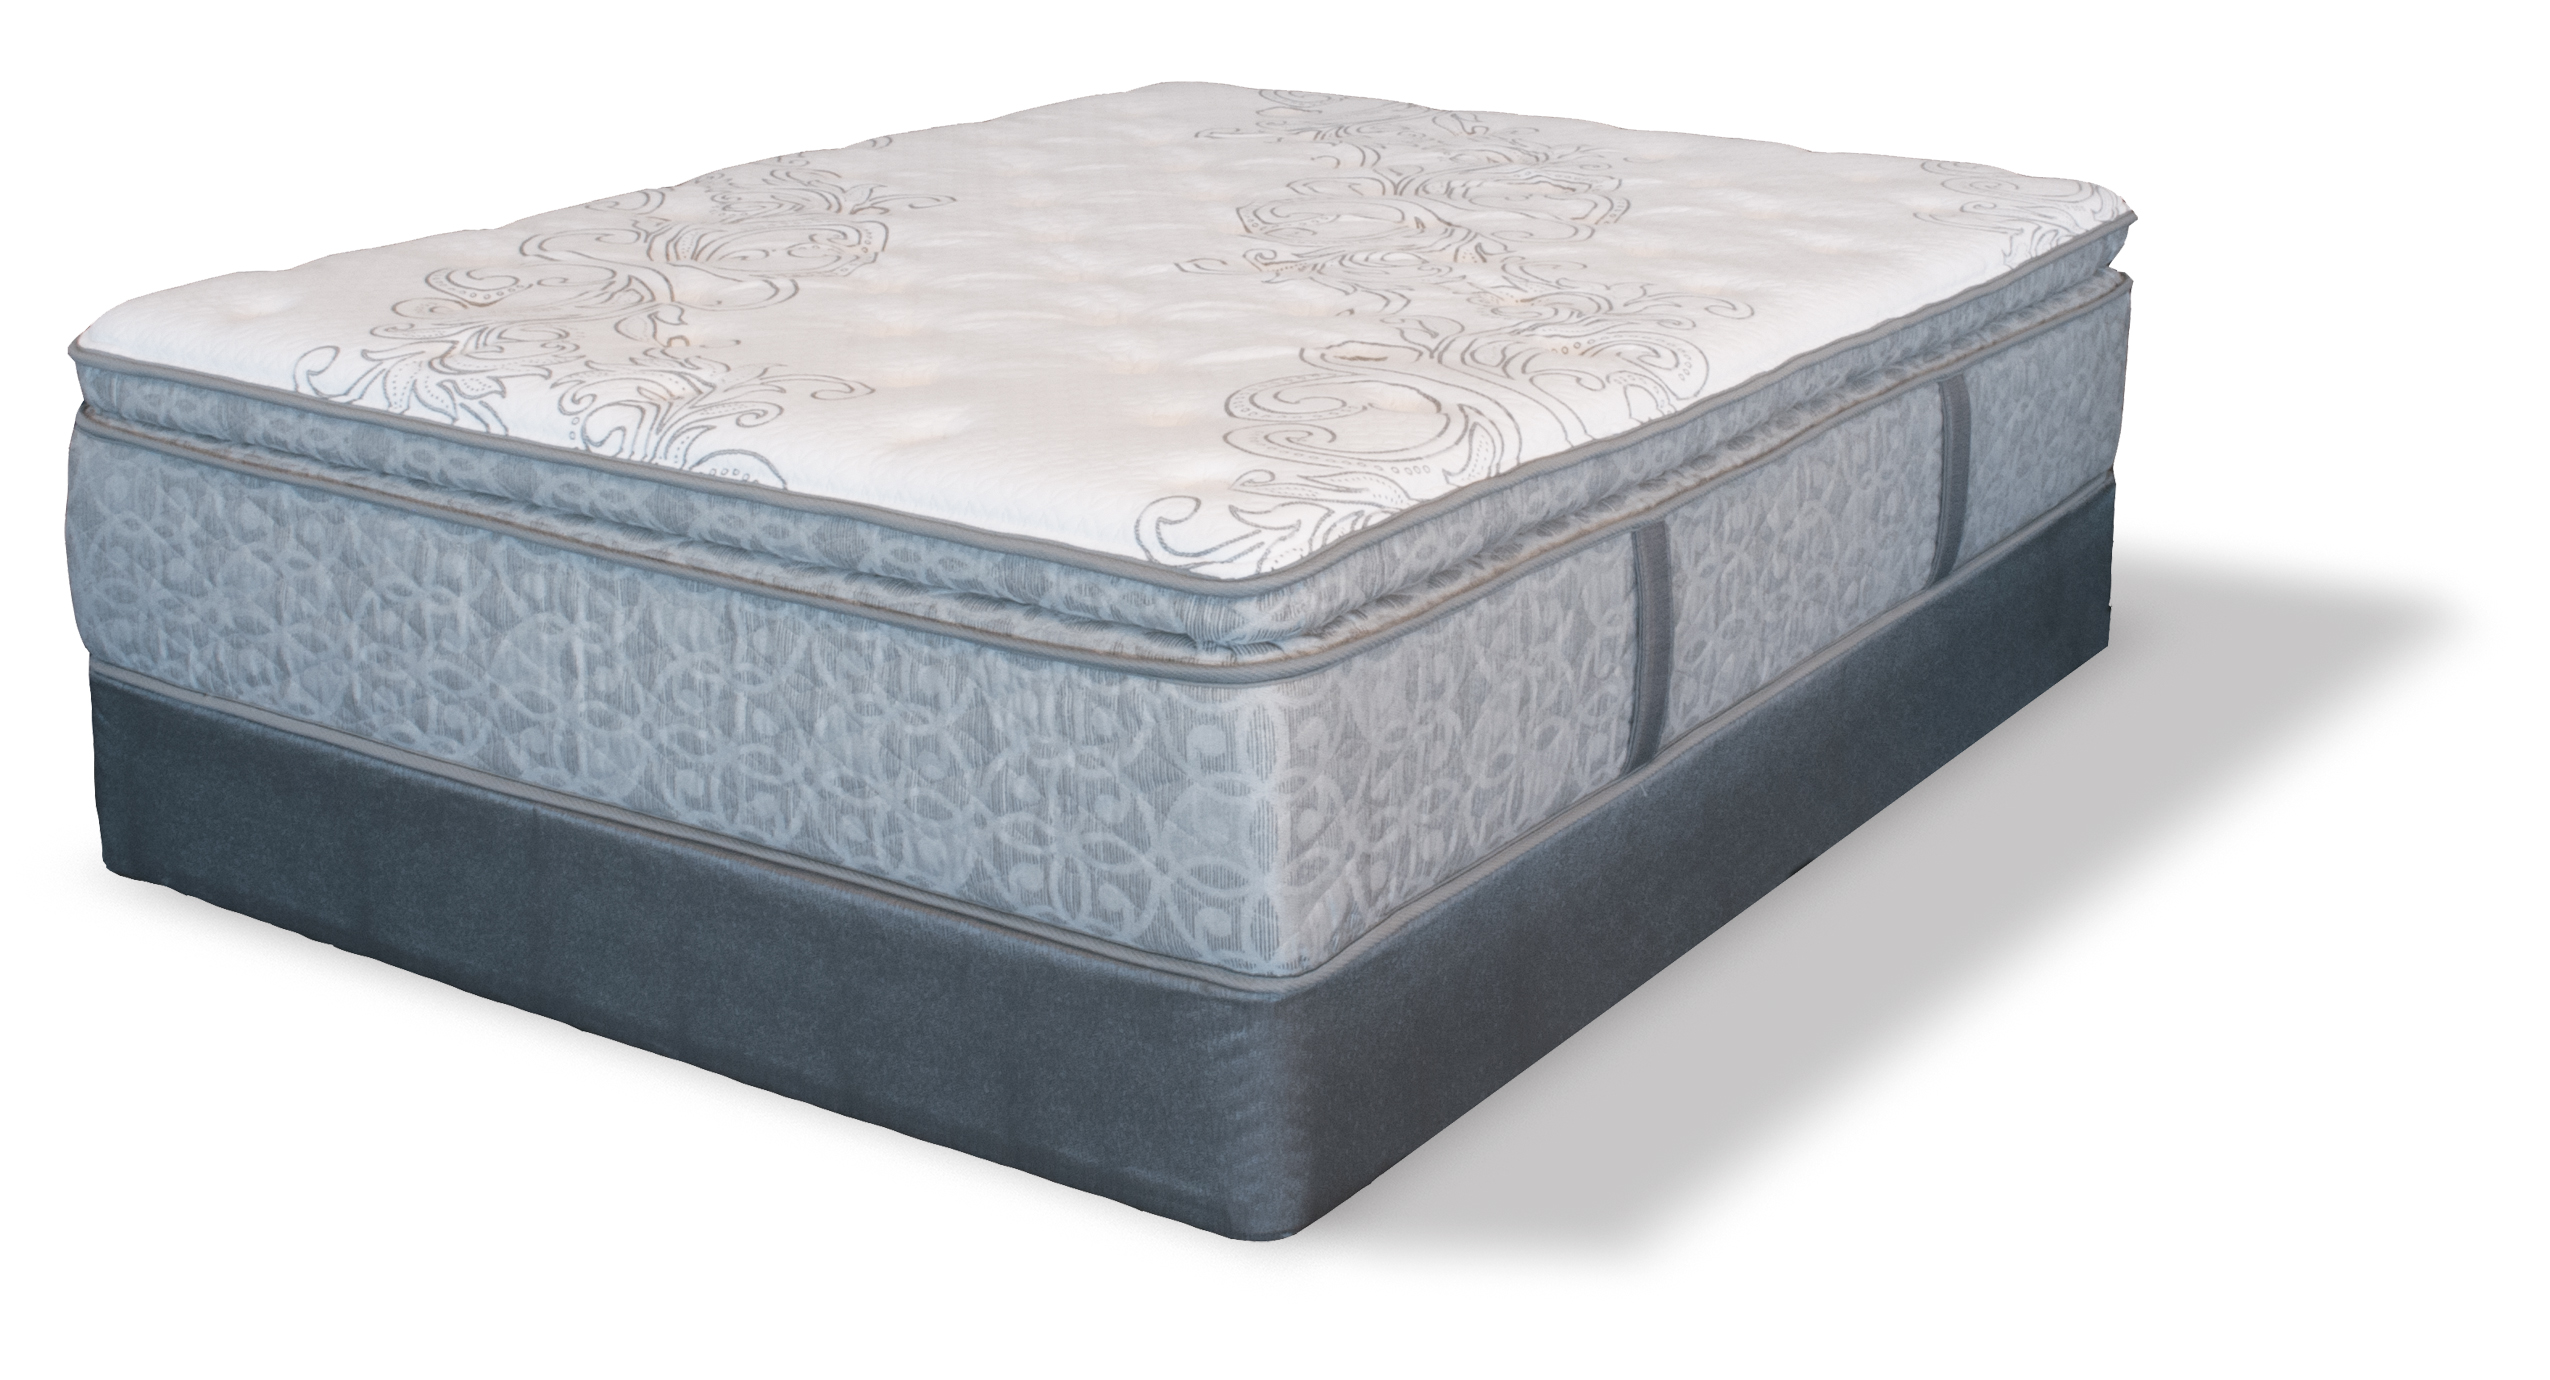 Serta Mattress Sale Serta Queen Luxury Hotel Surplus Beds Mattress Brand New Serta Limited